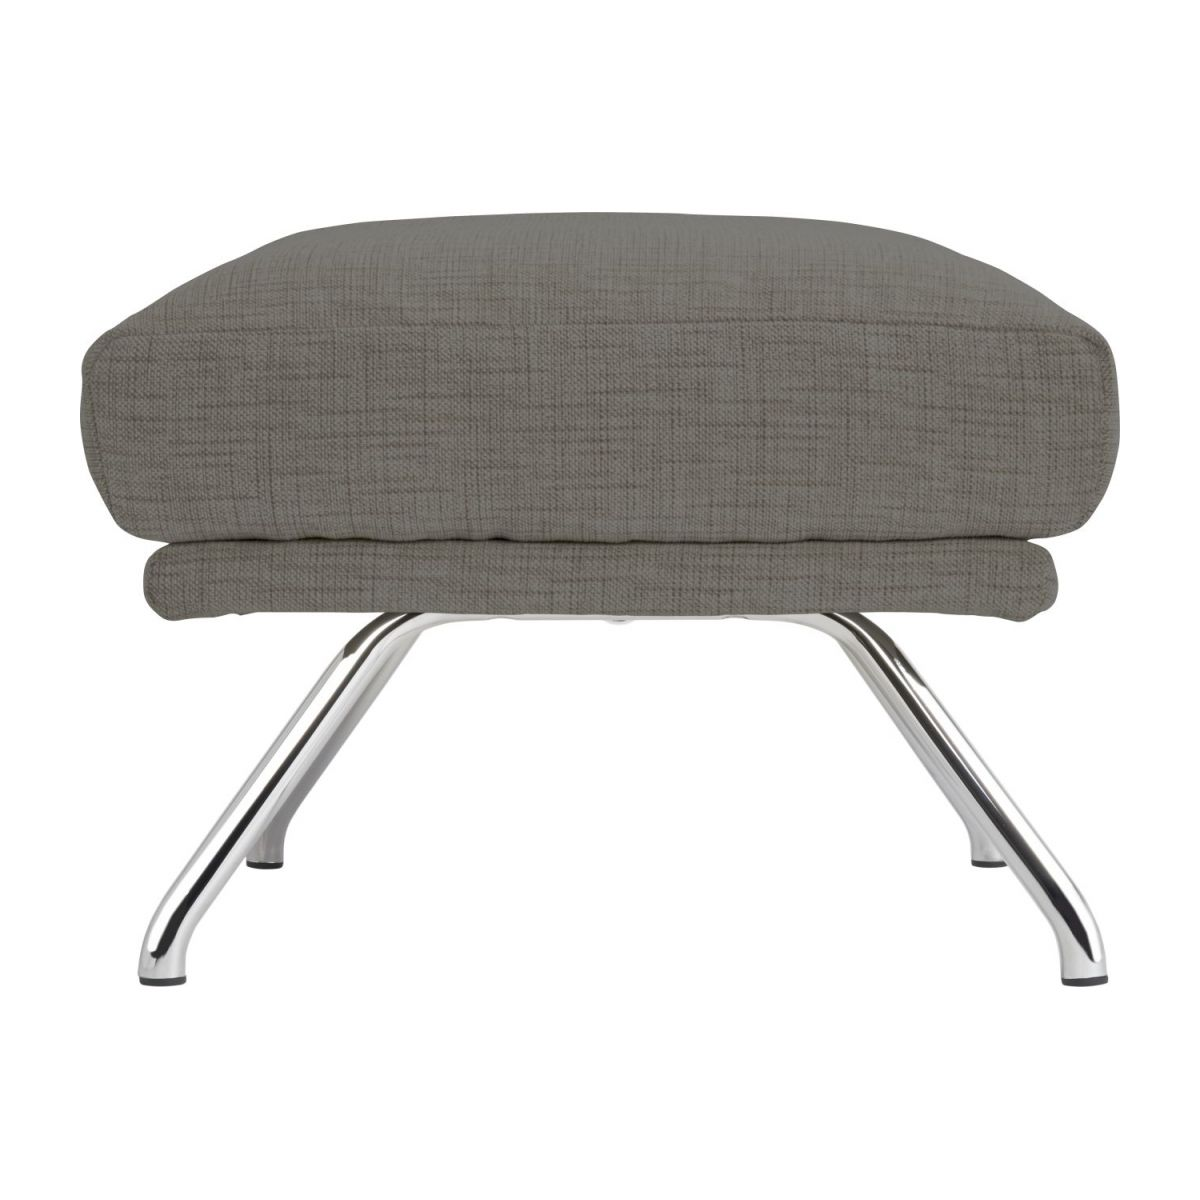 Footstool in Ancio fabric, river rock with chromed metal legs n°5